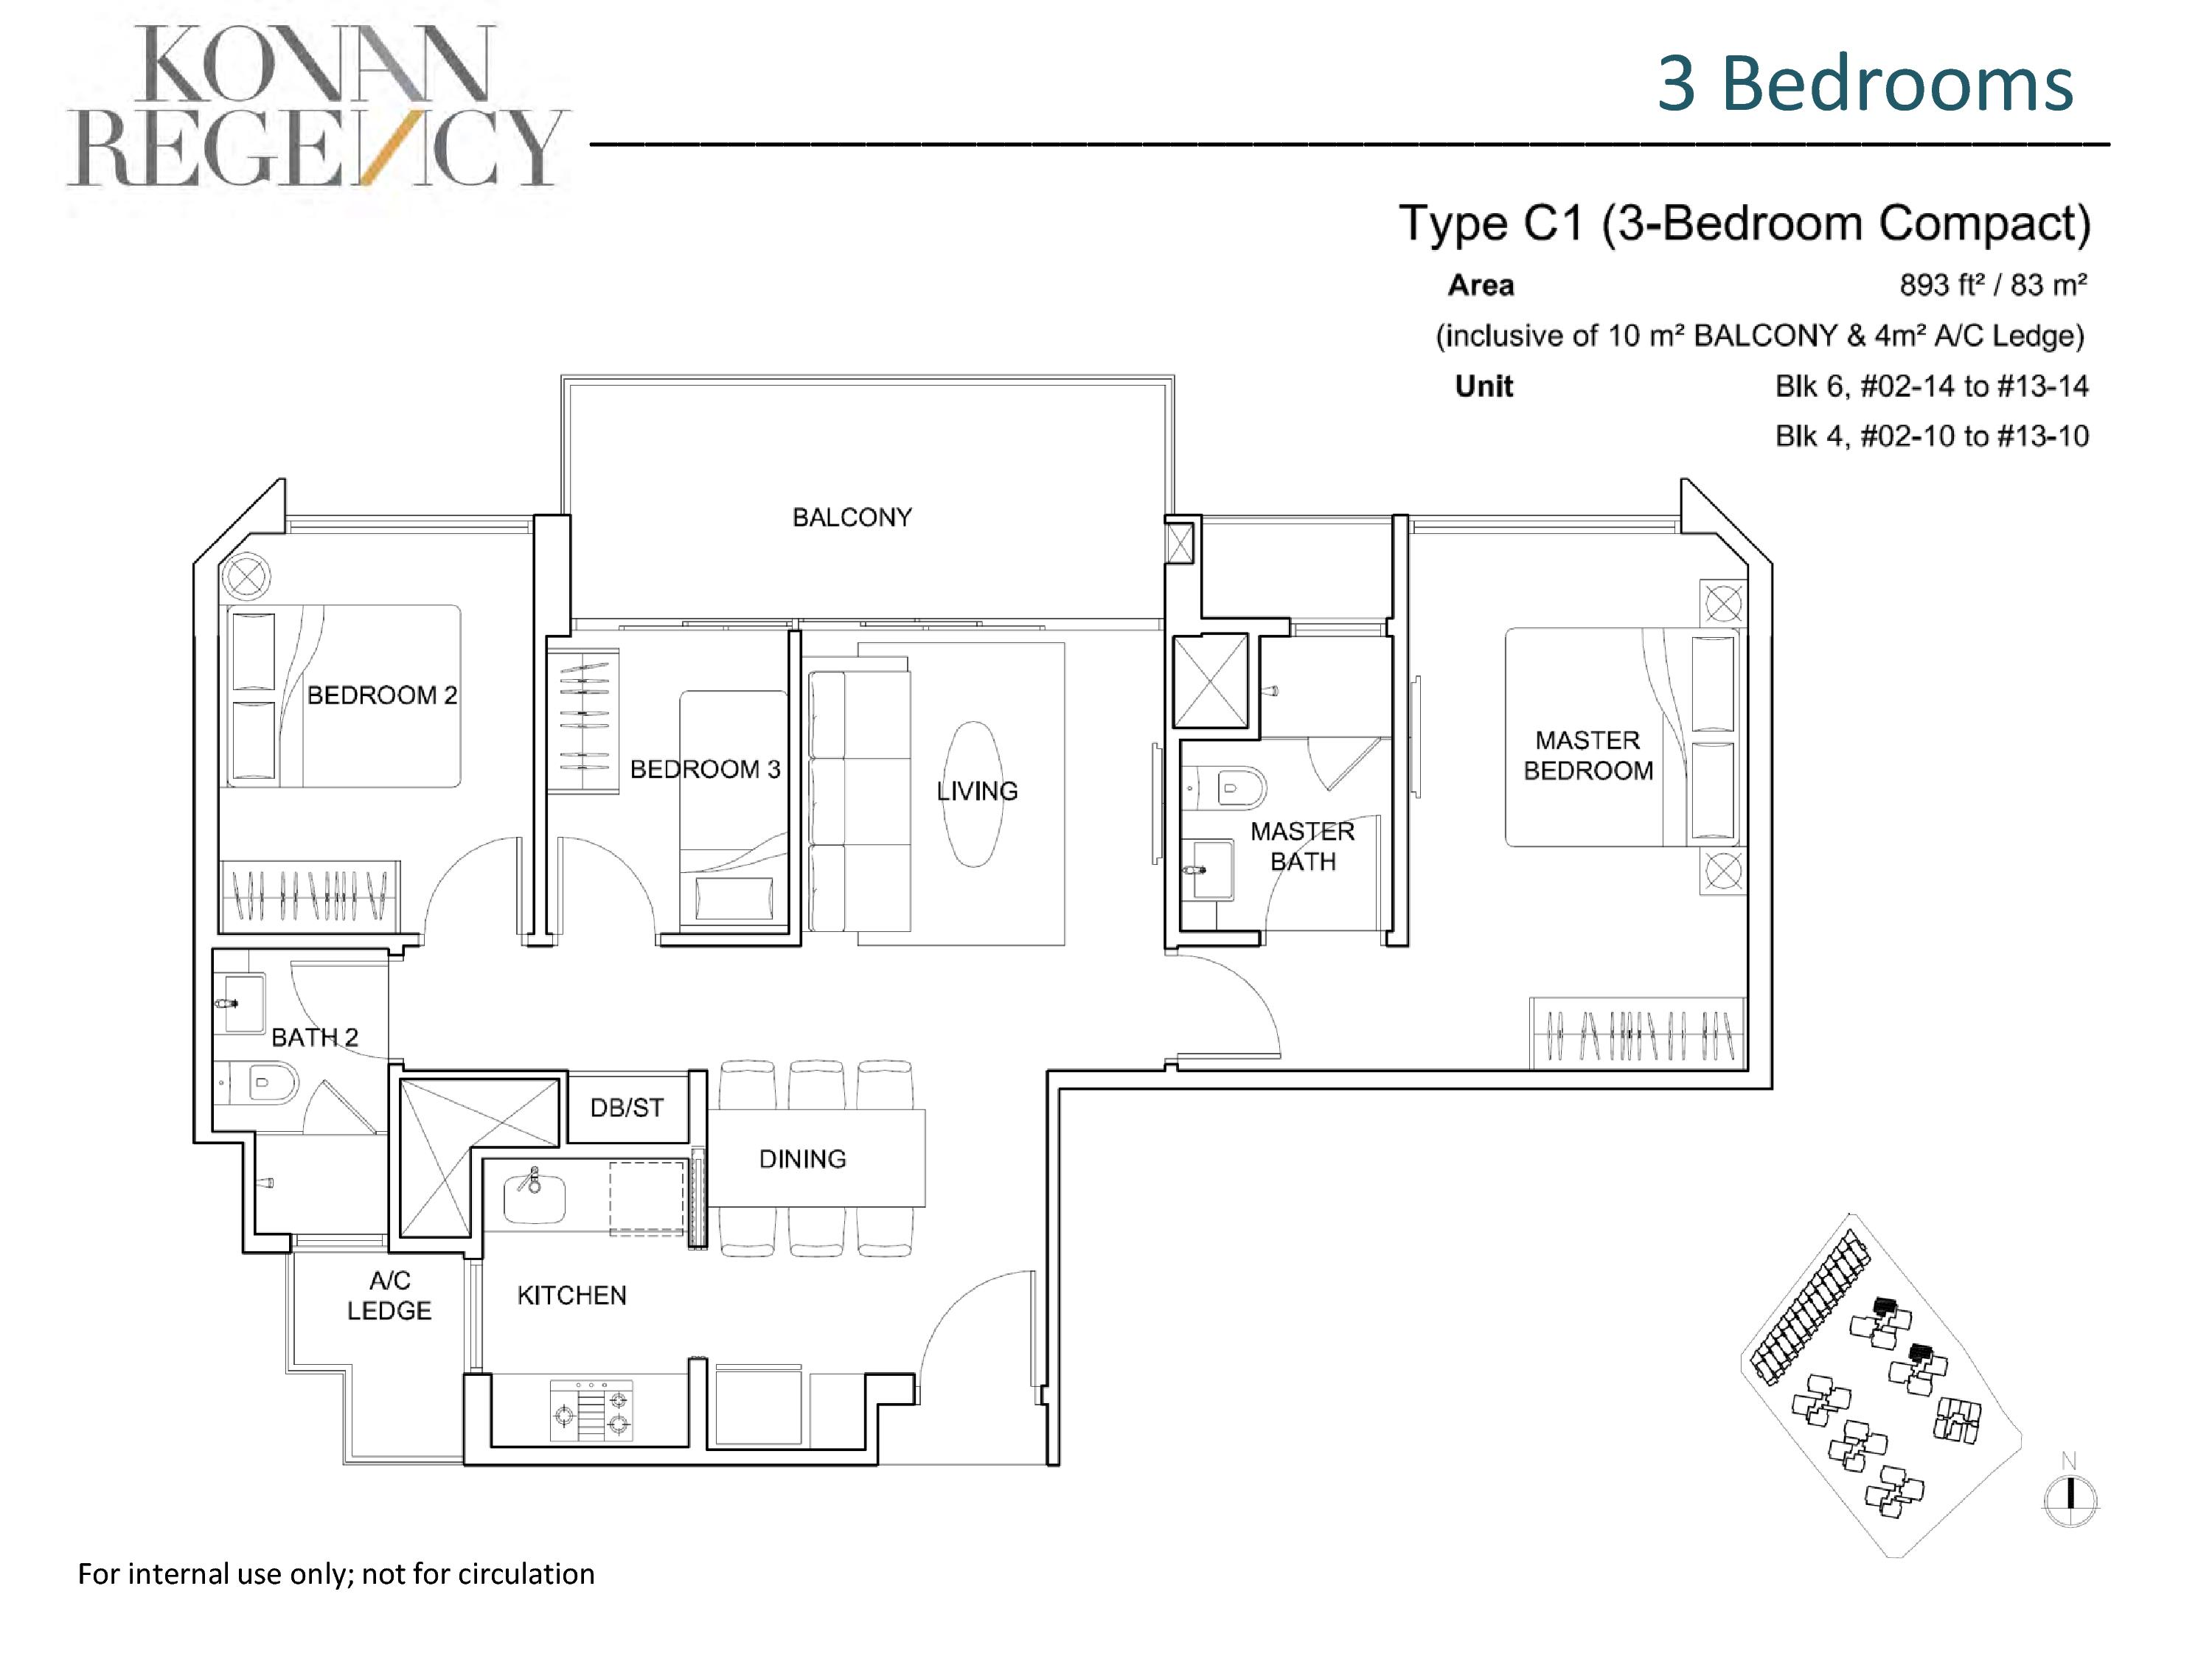 Kovan Regency 3 Bedroom Compact Floor Plans Type C1